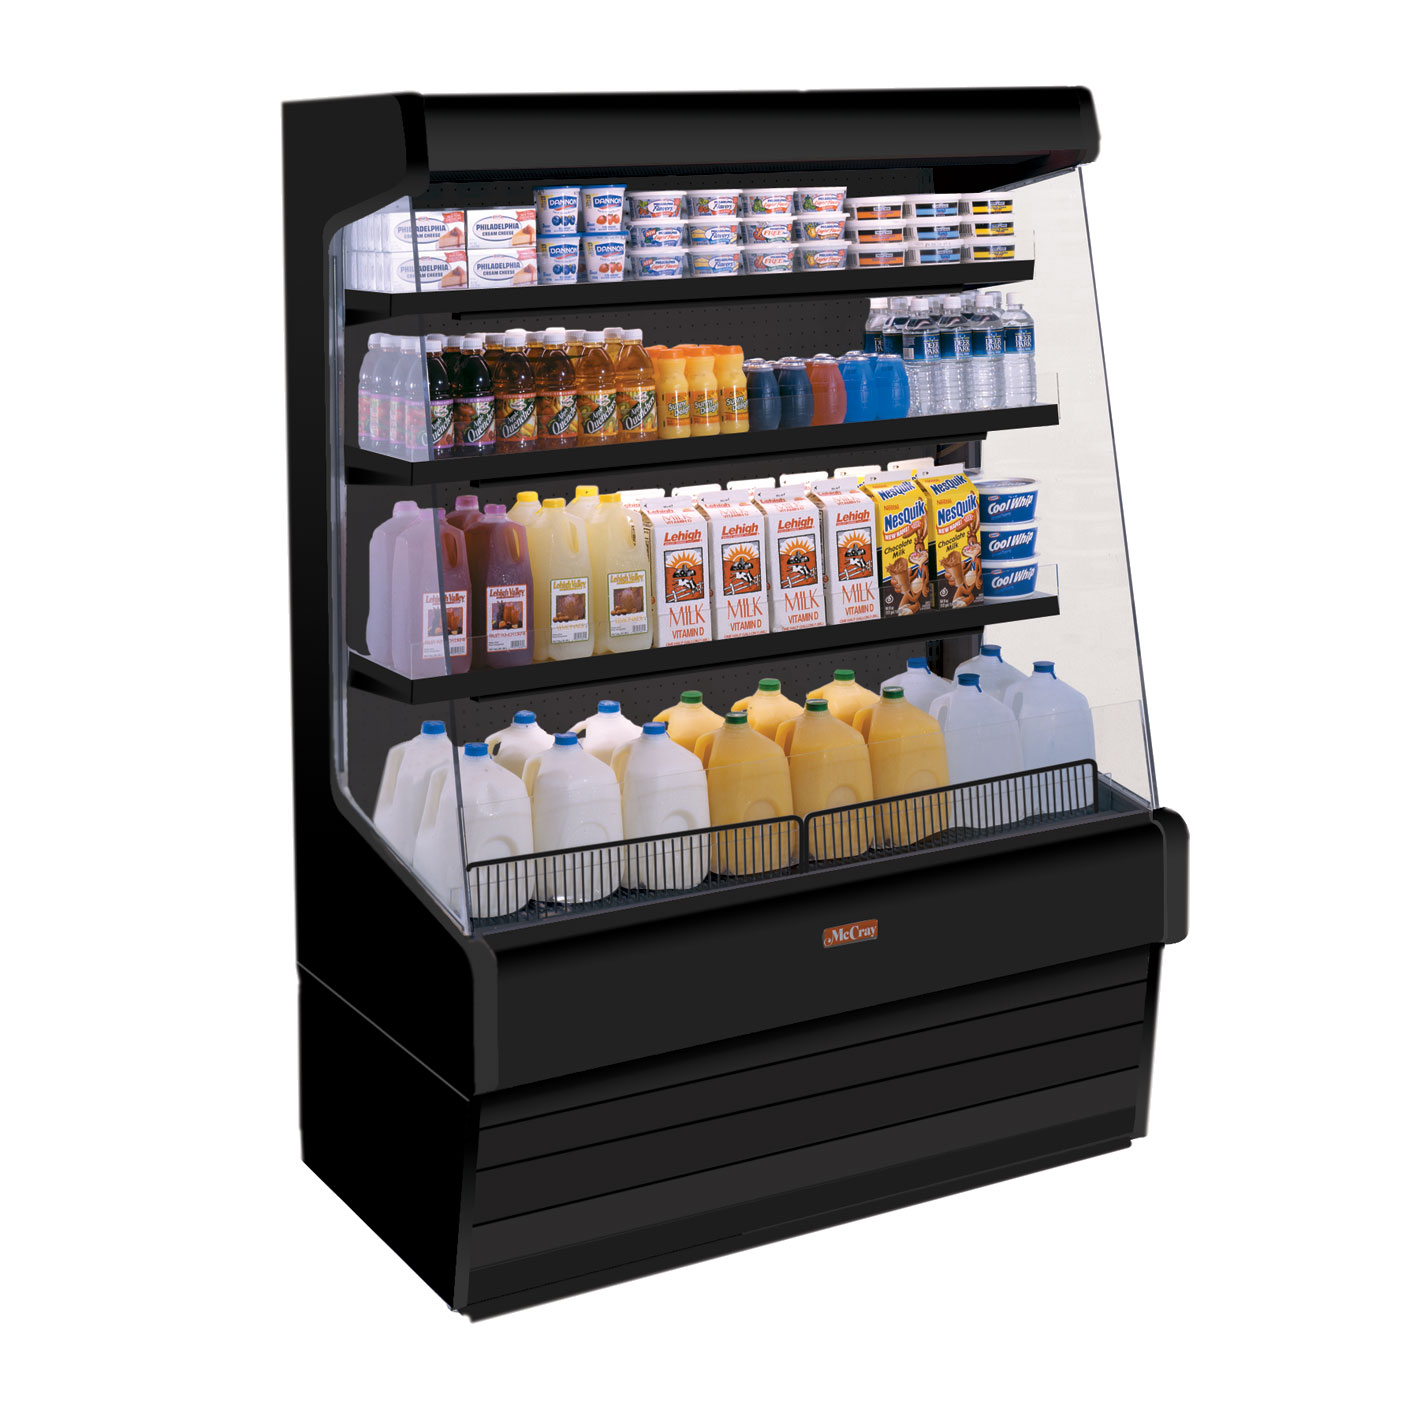 Howard-McCray R-OD30E-12-B-LED merchandiser, open refrigerated display